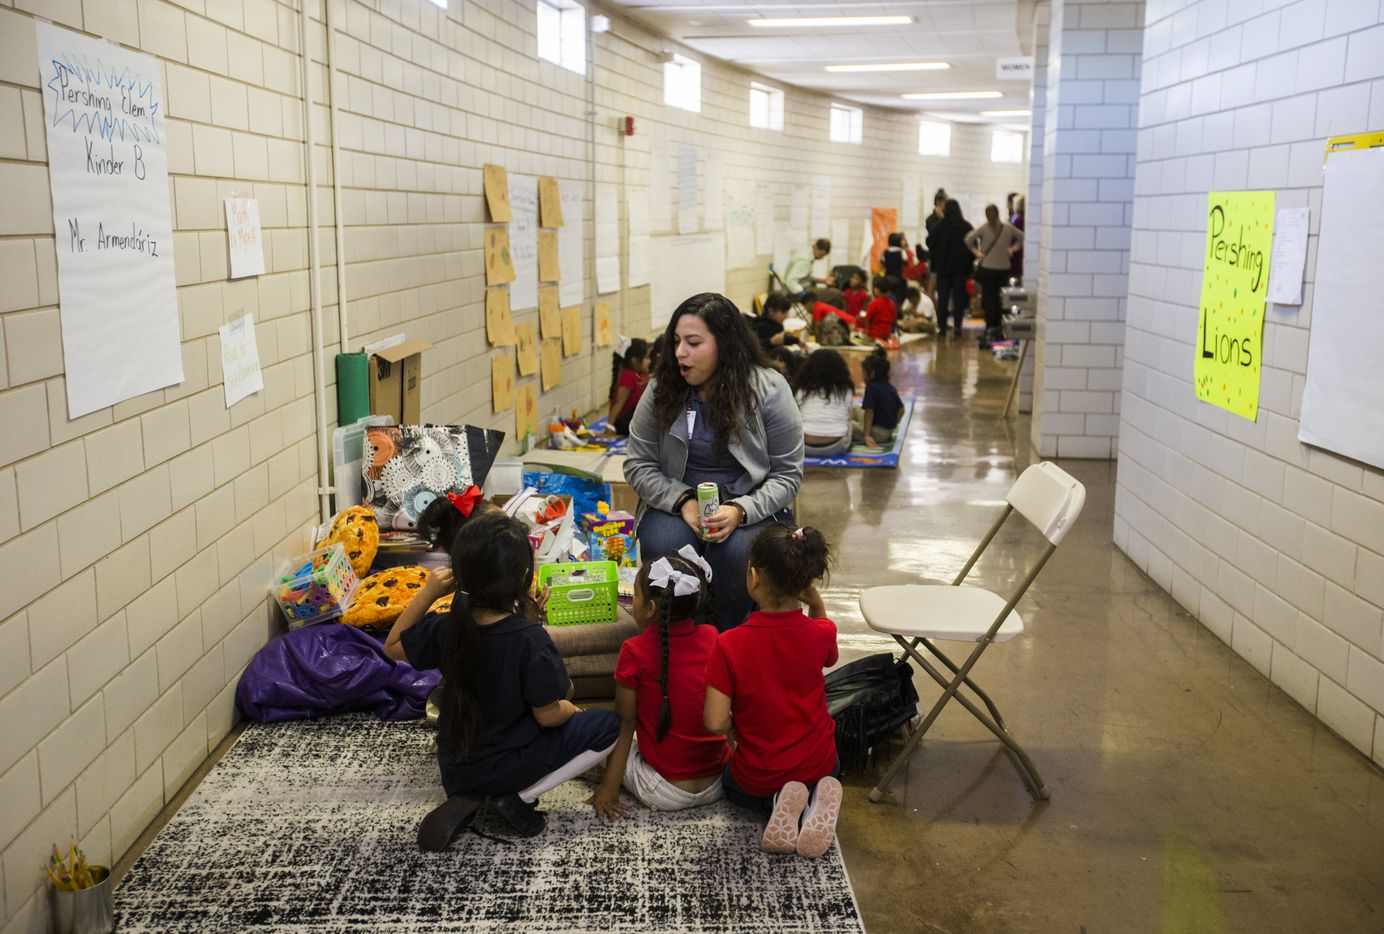 Instructional Specialist Tania Fuentes helps with a Pershing Elementary School kindergarten class in the hallway at Alfred J. Loos Athletic Complex on Wednesday, October 23, 2019 in Dallas. Pershing, Burnet and Cigarroa Elementary schools were damaged as multiple tornadoes ripped through the DFW area on Sunday night. (Ashley Landis/The Dallas Morning News)